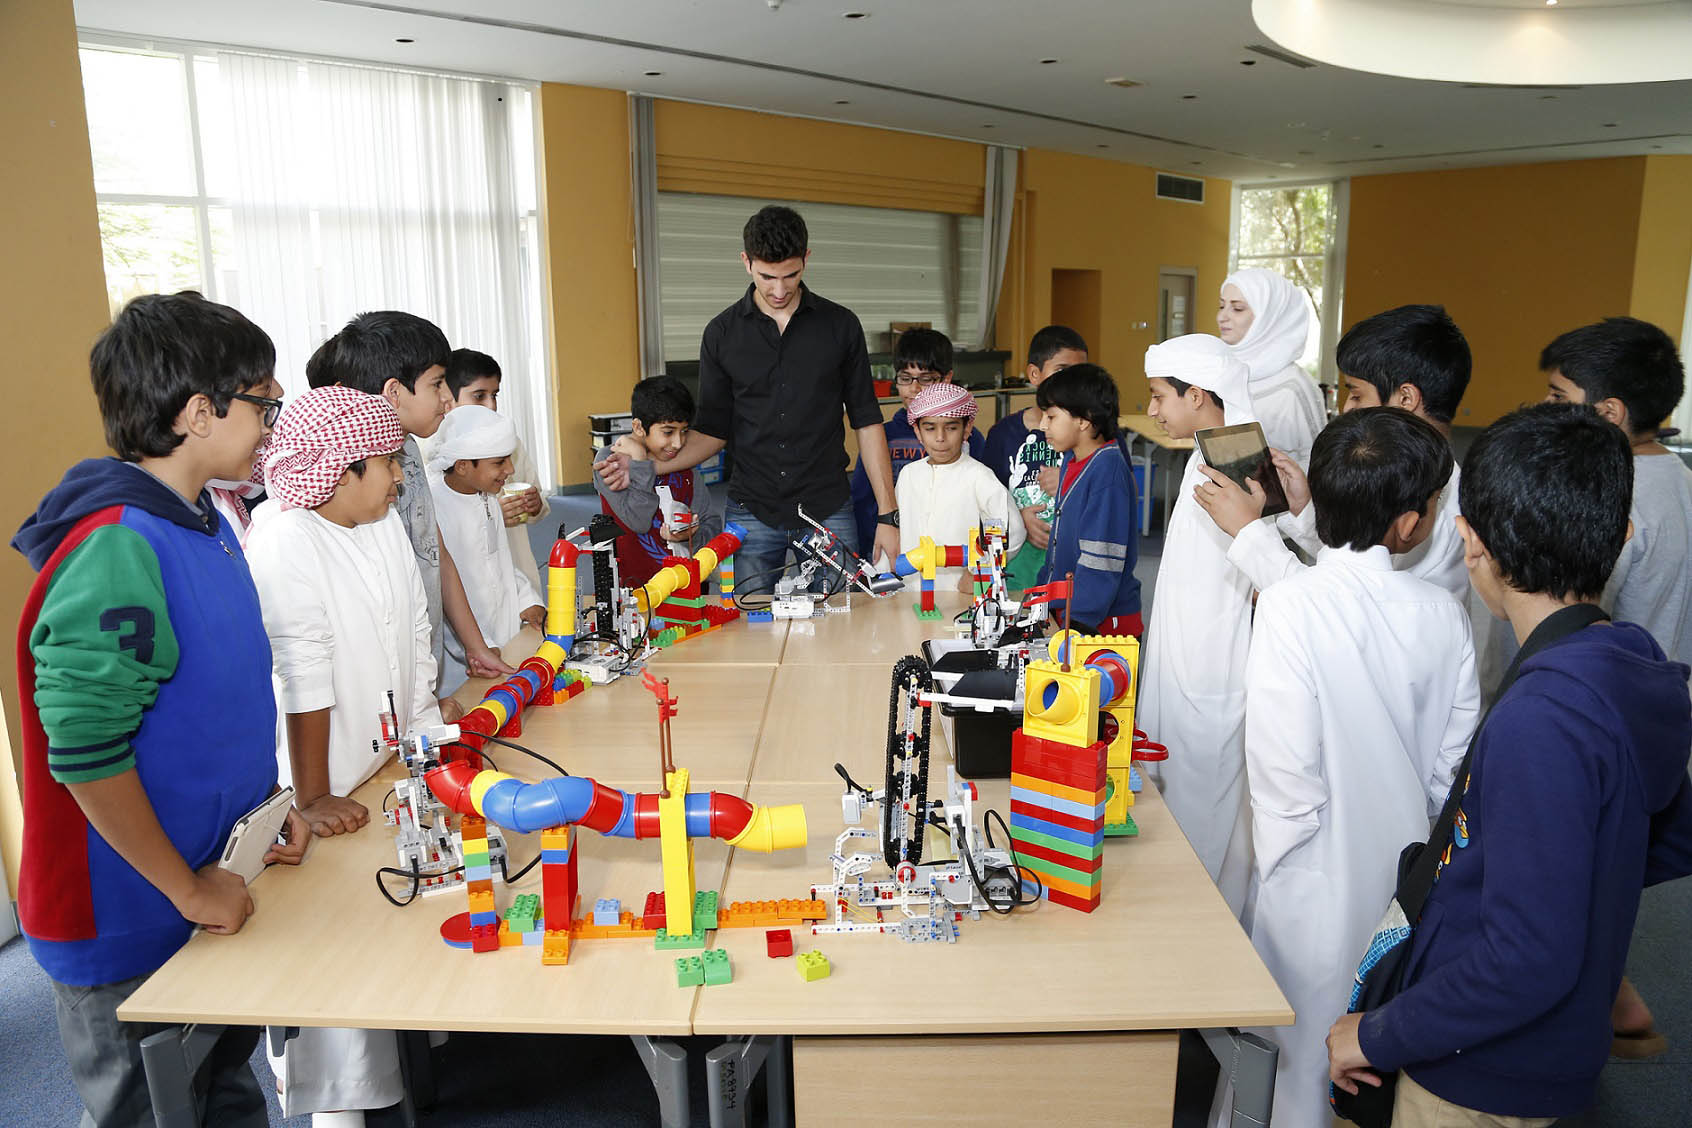 Uae Primary School Students To Build Robots As Part Of